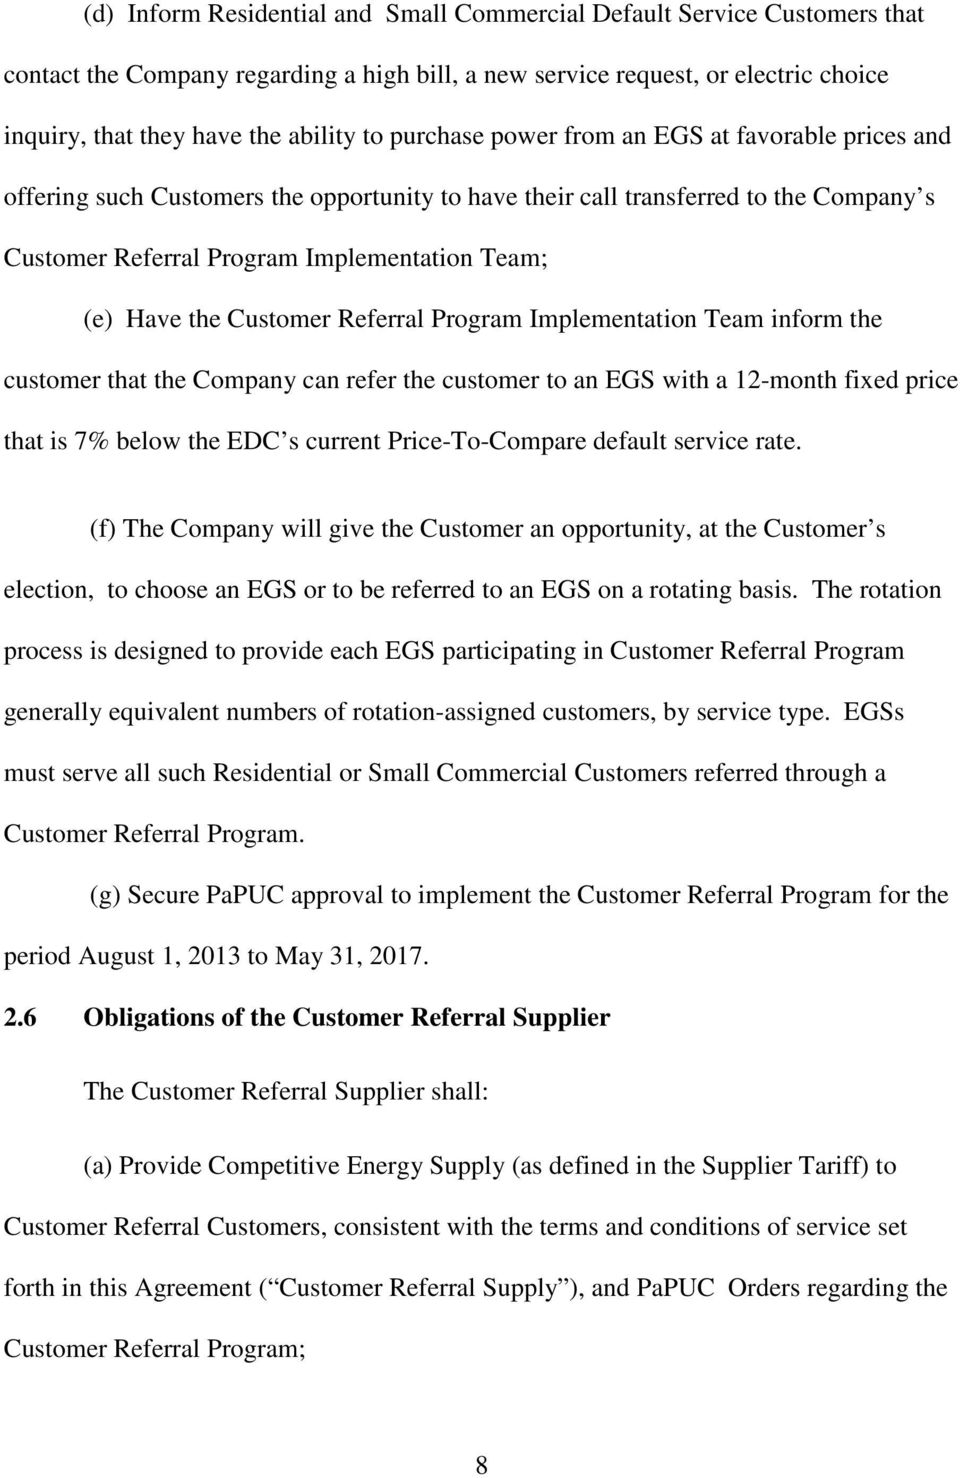 Customer Referral Program Implementation Team inform the customer that the Company can refer the customer to an EGS with a 12-month fixed price that is 7% below the EDC s current Price-To-Compare